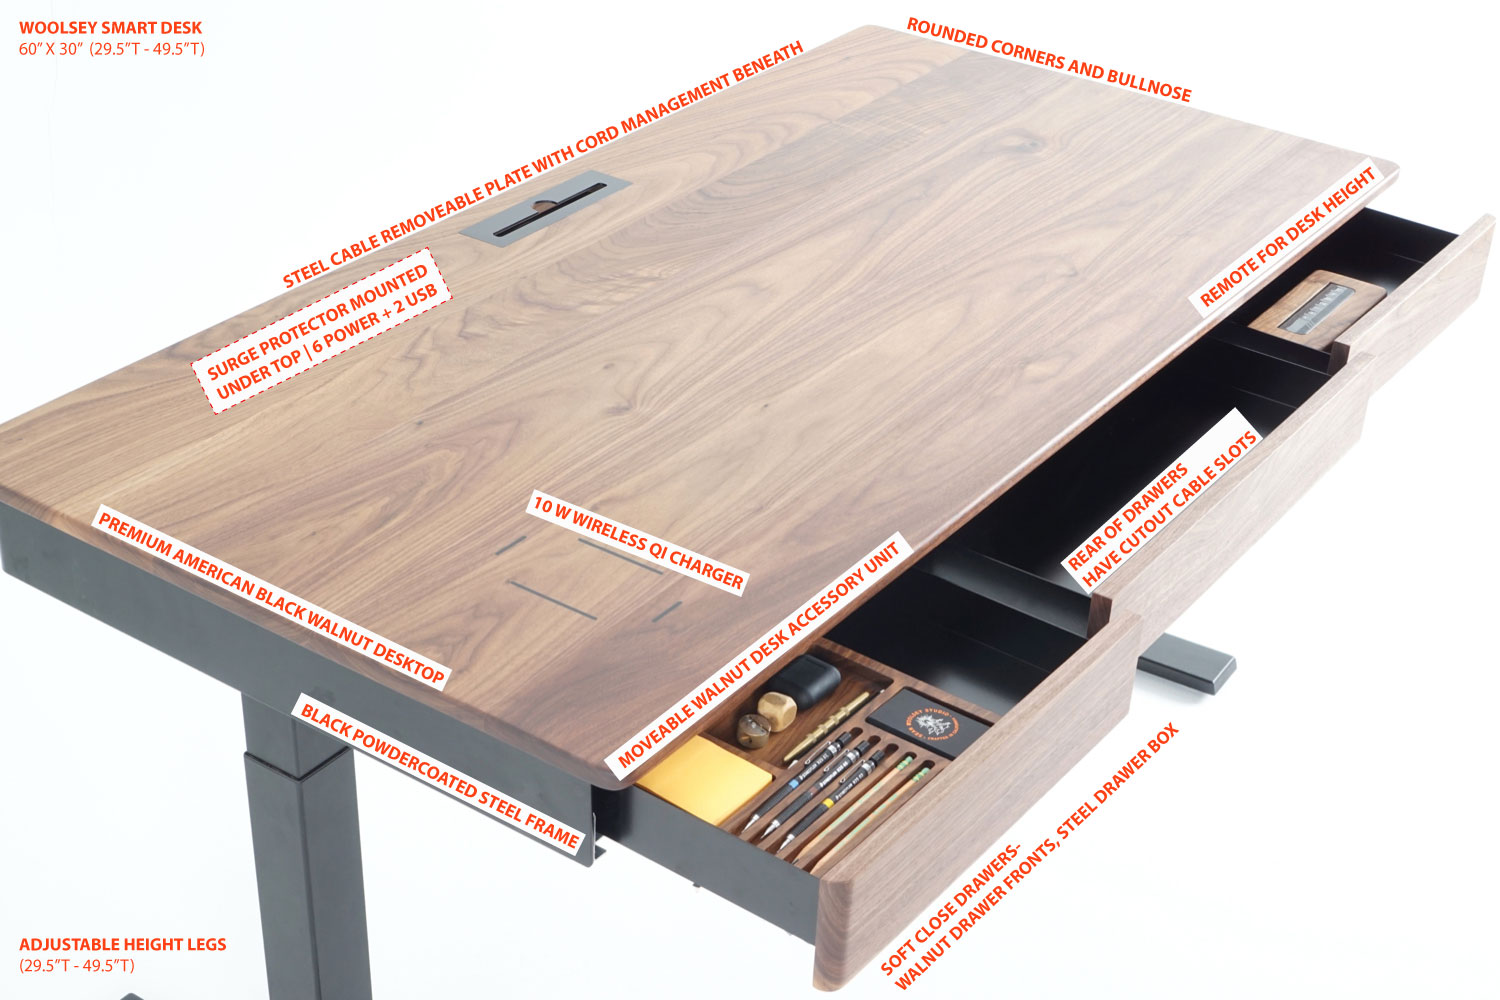 woolsey smart desk available